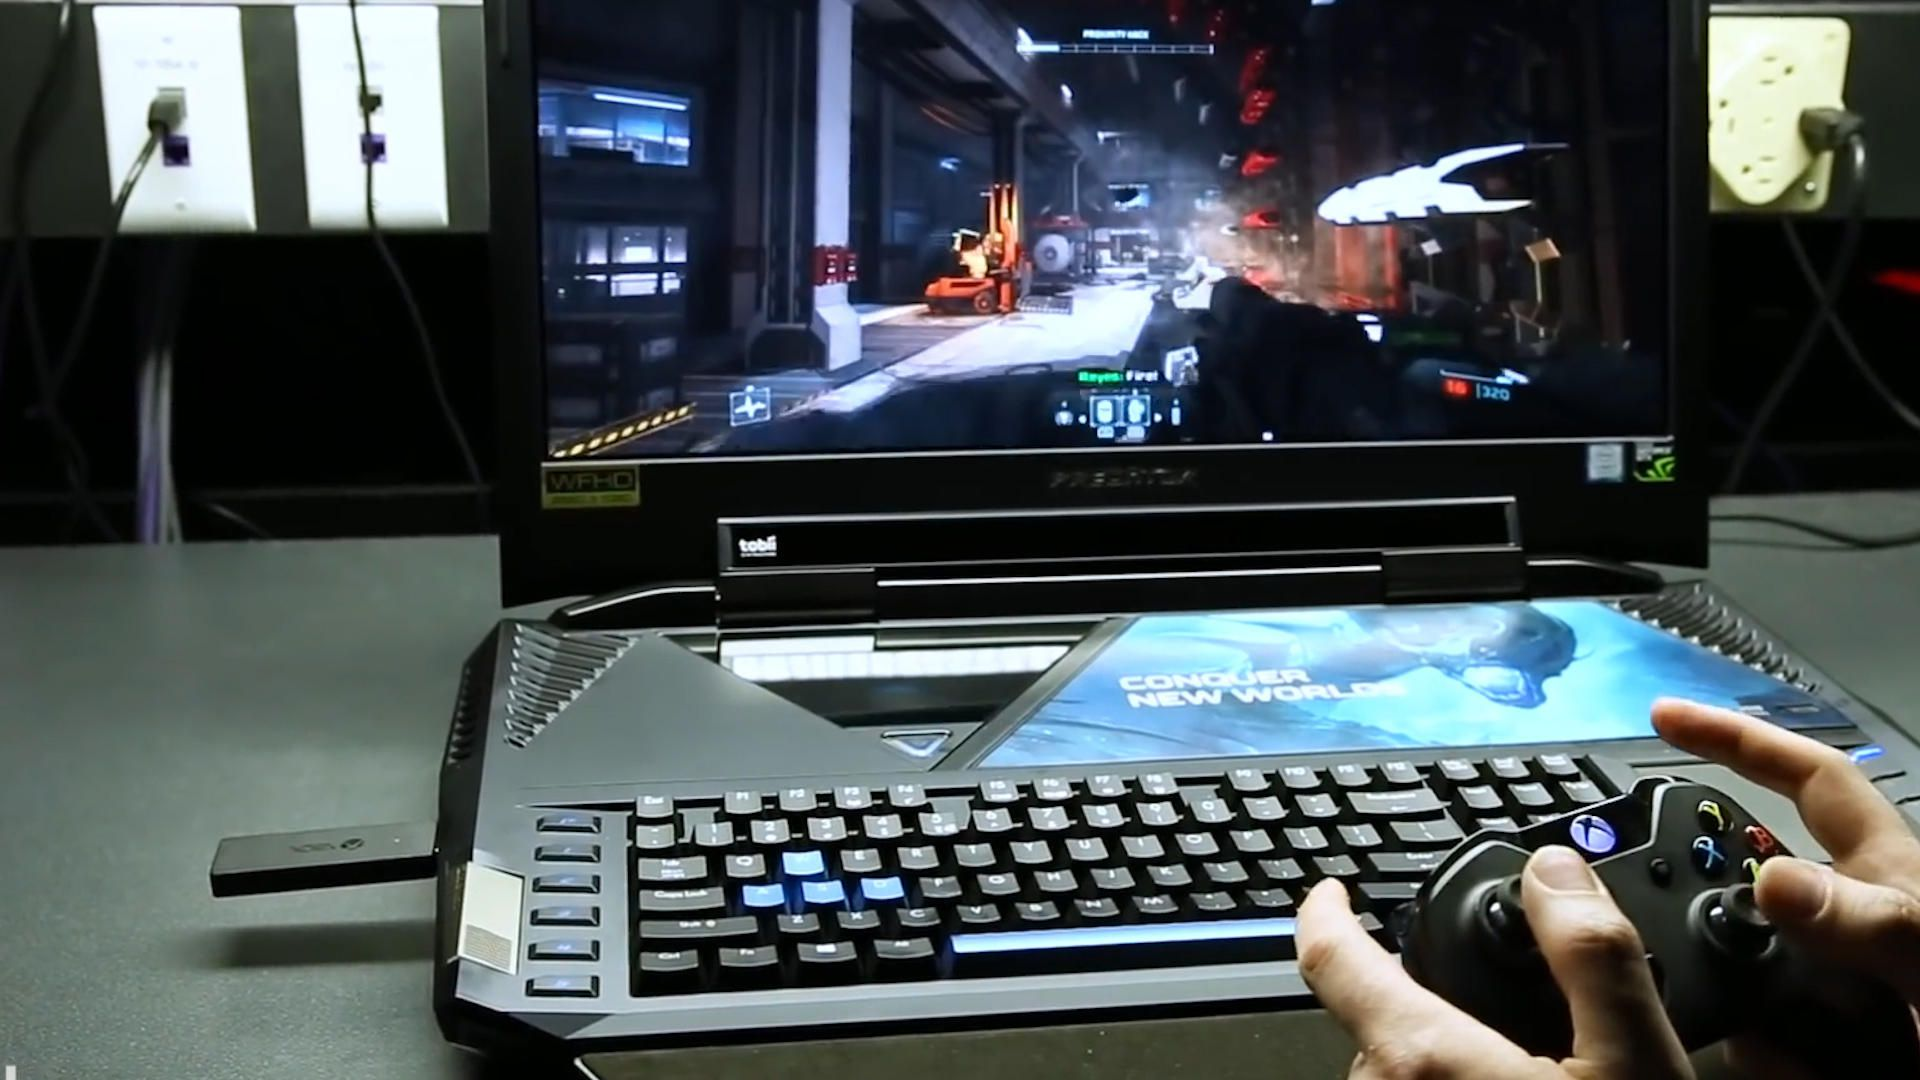 gaming laptops prices in nigeria pics nairatechnology